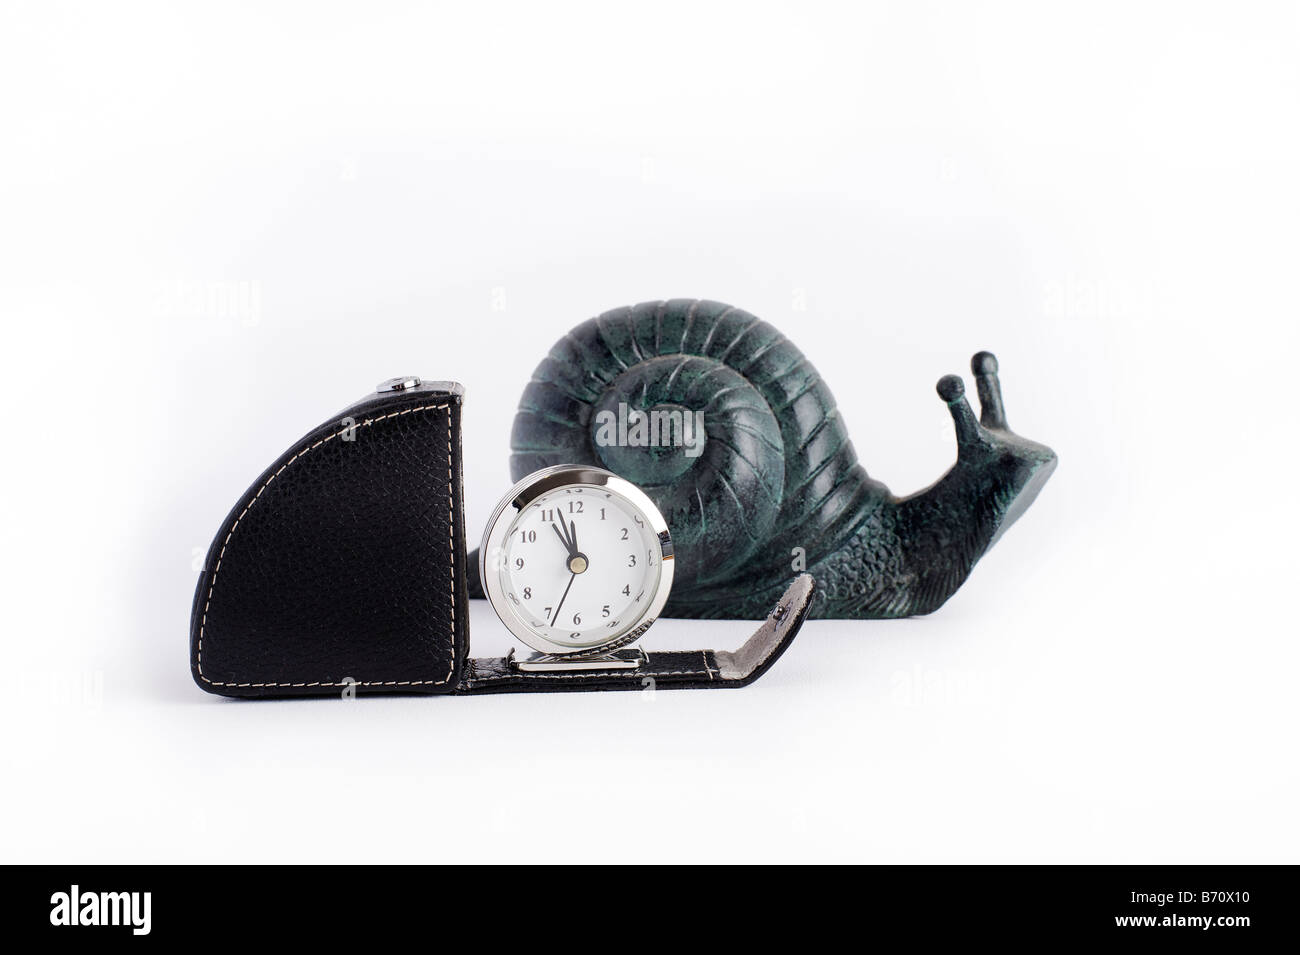 similarly shaped clock and carved snail side by side - Stock Image